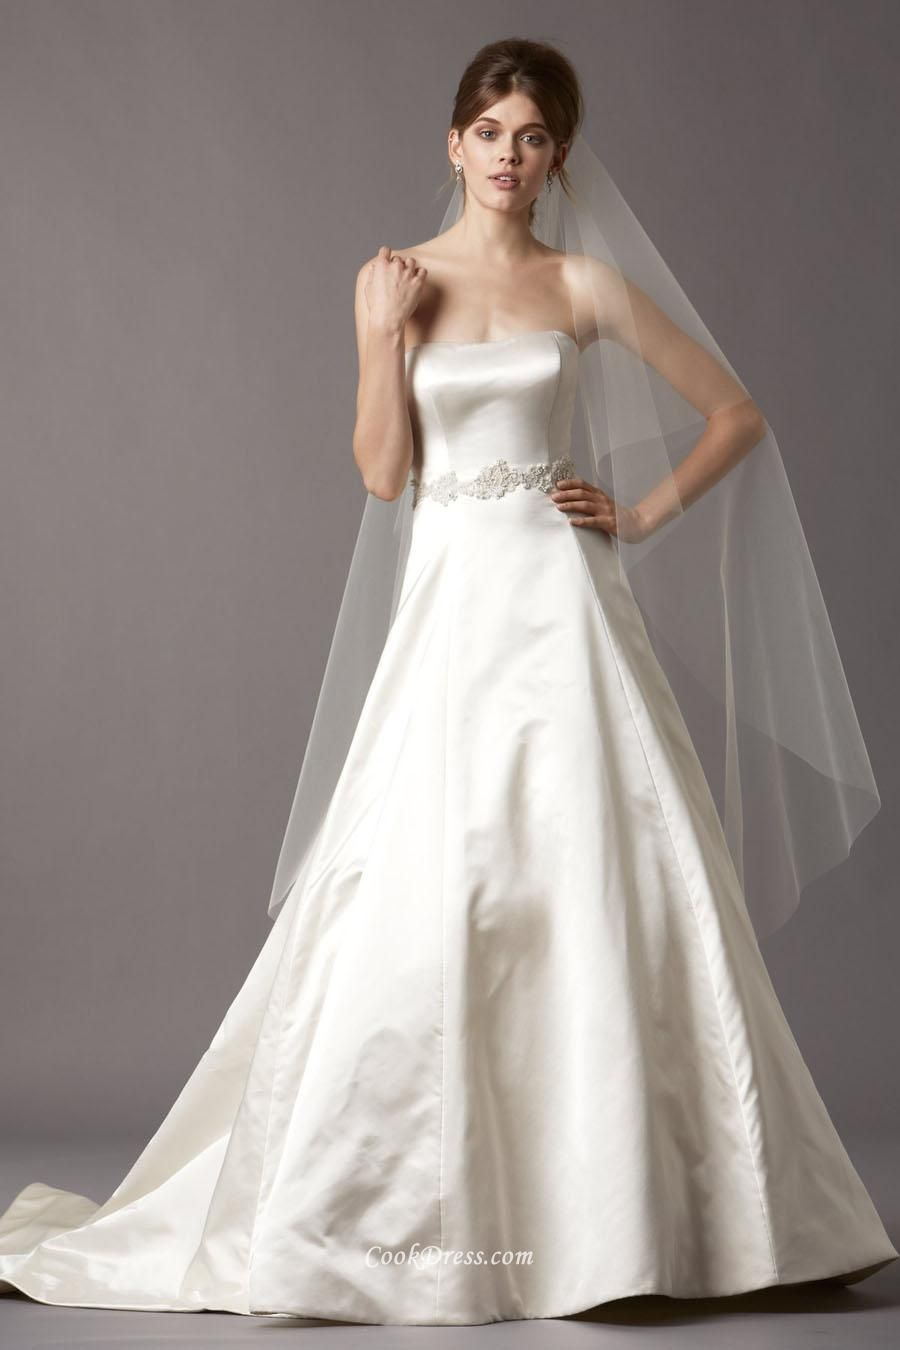 Simple strapless a line long satin wedding dress with lace belt simple strapless a line long satin wedding dress with lace belt ombrellifo Images